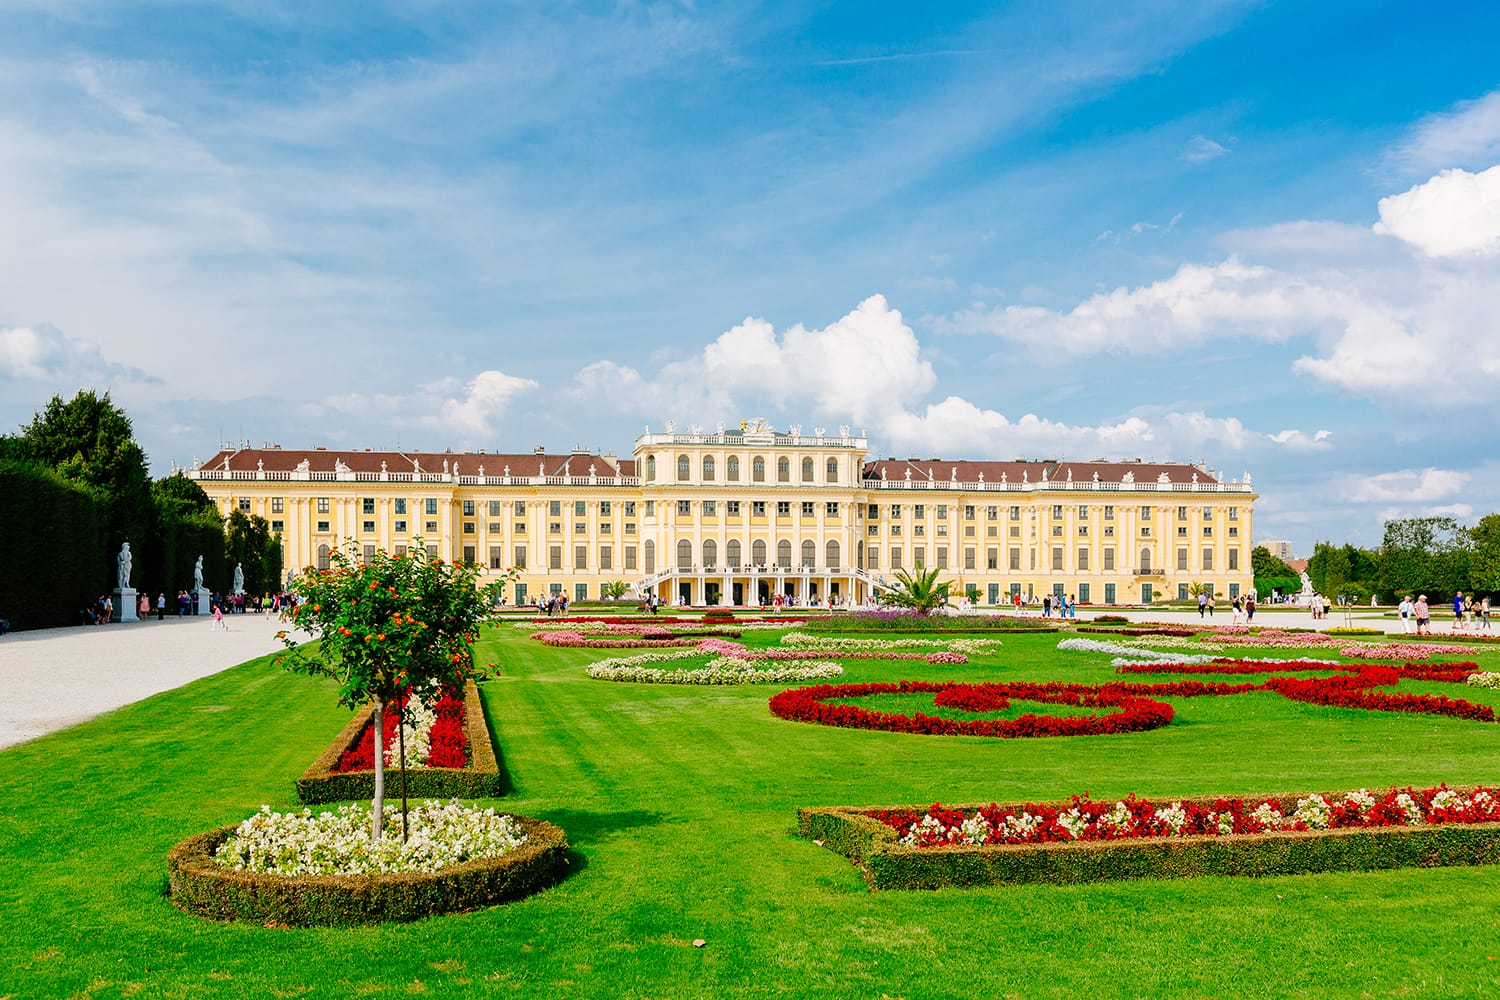 Schoenbrunn Palace in Vienna (c) VIENNA SIGHTSEEING TOURS/Bernhard Luck